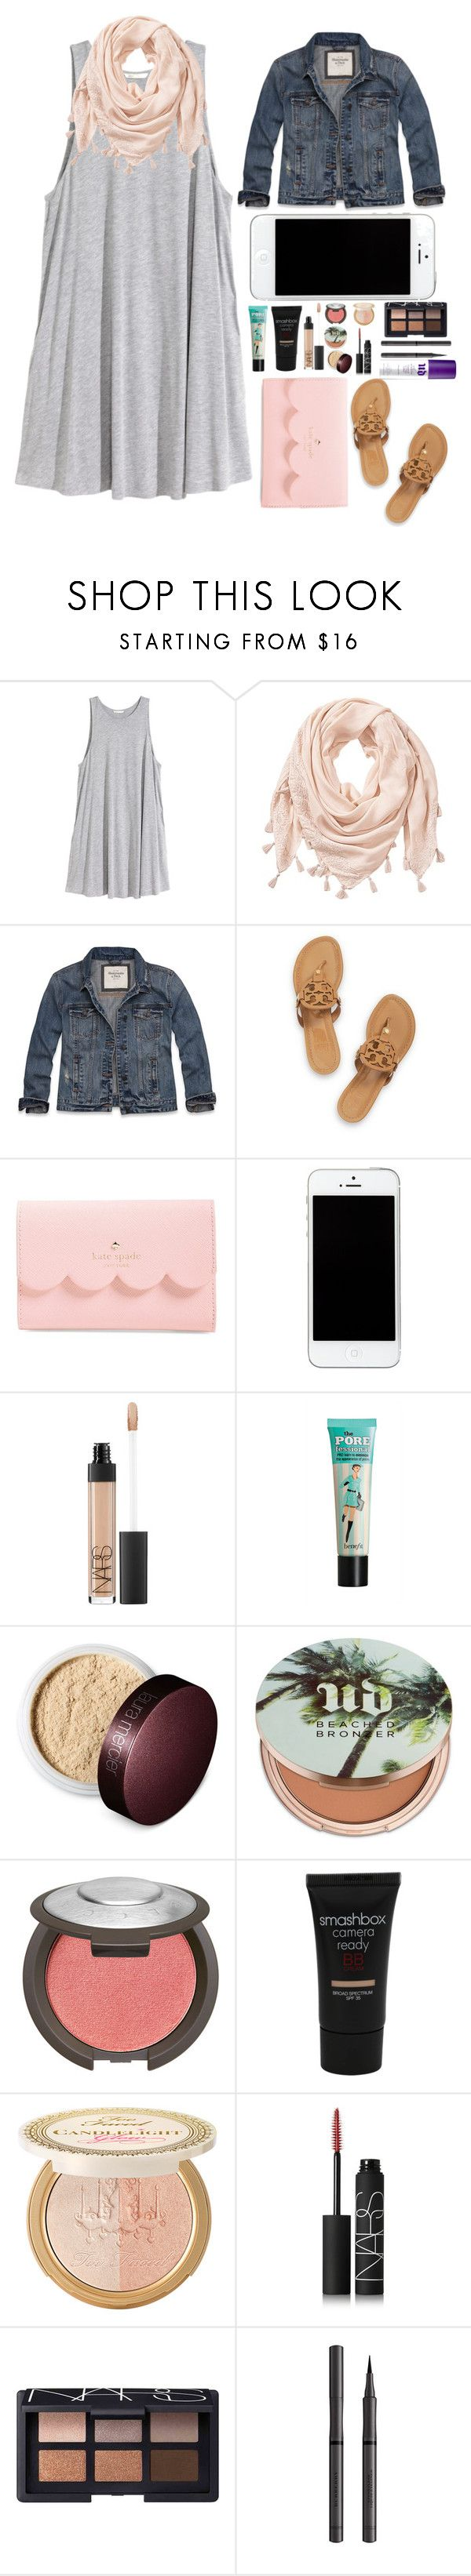 """""""Thanks for 500 followers!!"""" by bowhunter1498702 ❤ liked on Polyvore featuring H&M, Abercrombie & Fitch, Tory Burch, Kate Spade, NARS Cosmetics, Laura Mercier, Urban Decay, Smashbox and Burberry"""